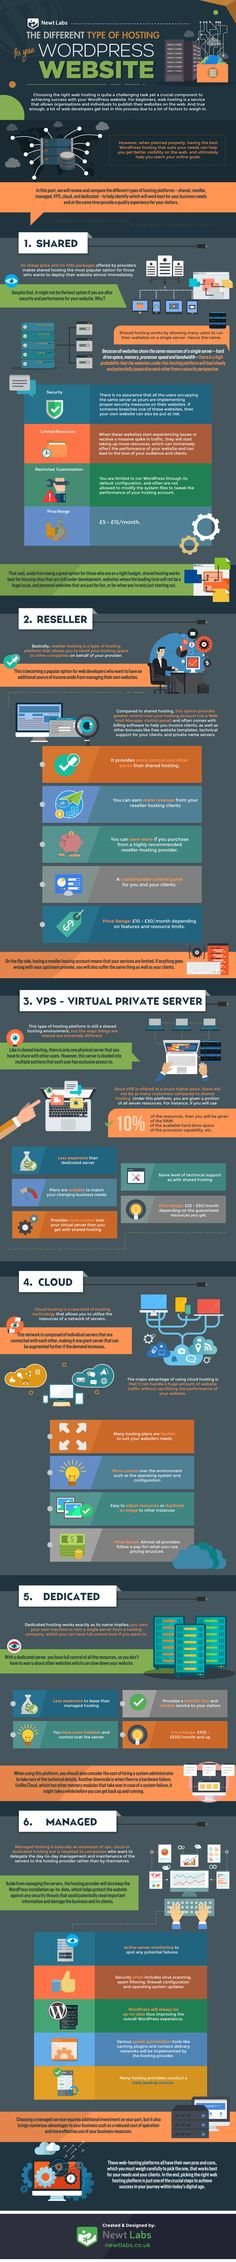 The Different Types Of Hosting For Your WordPress Website - #Infographic